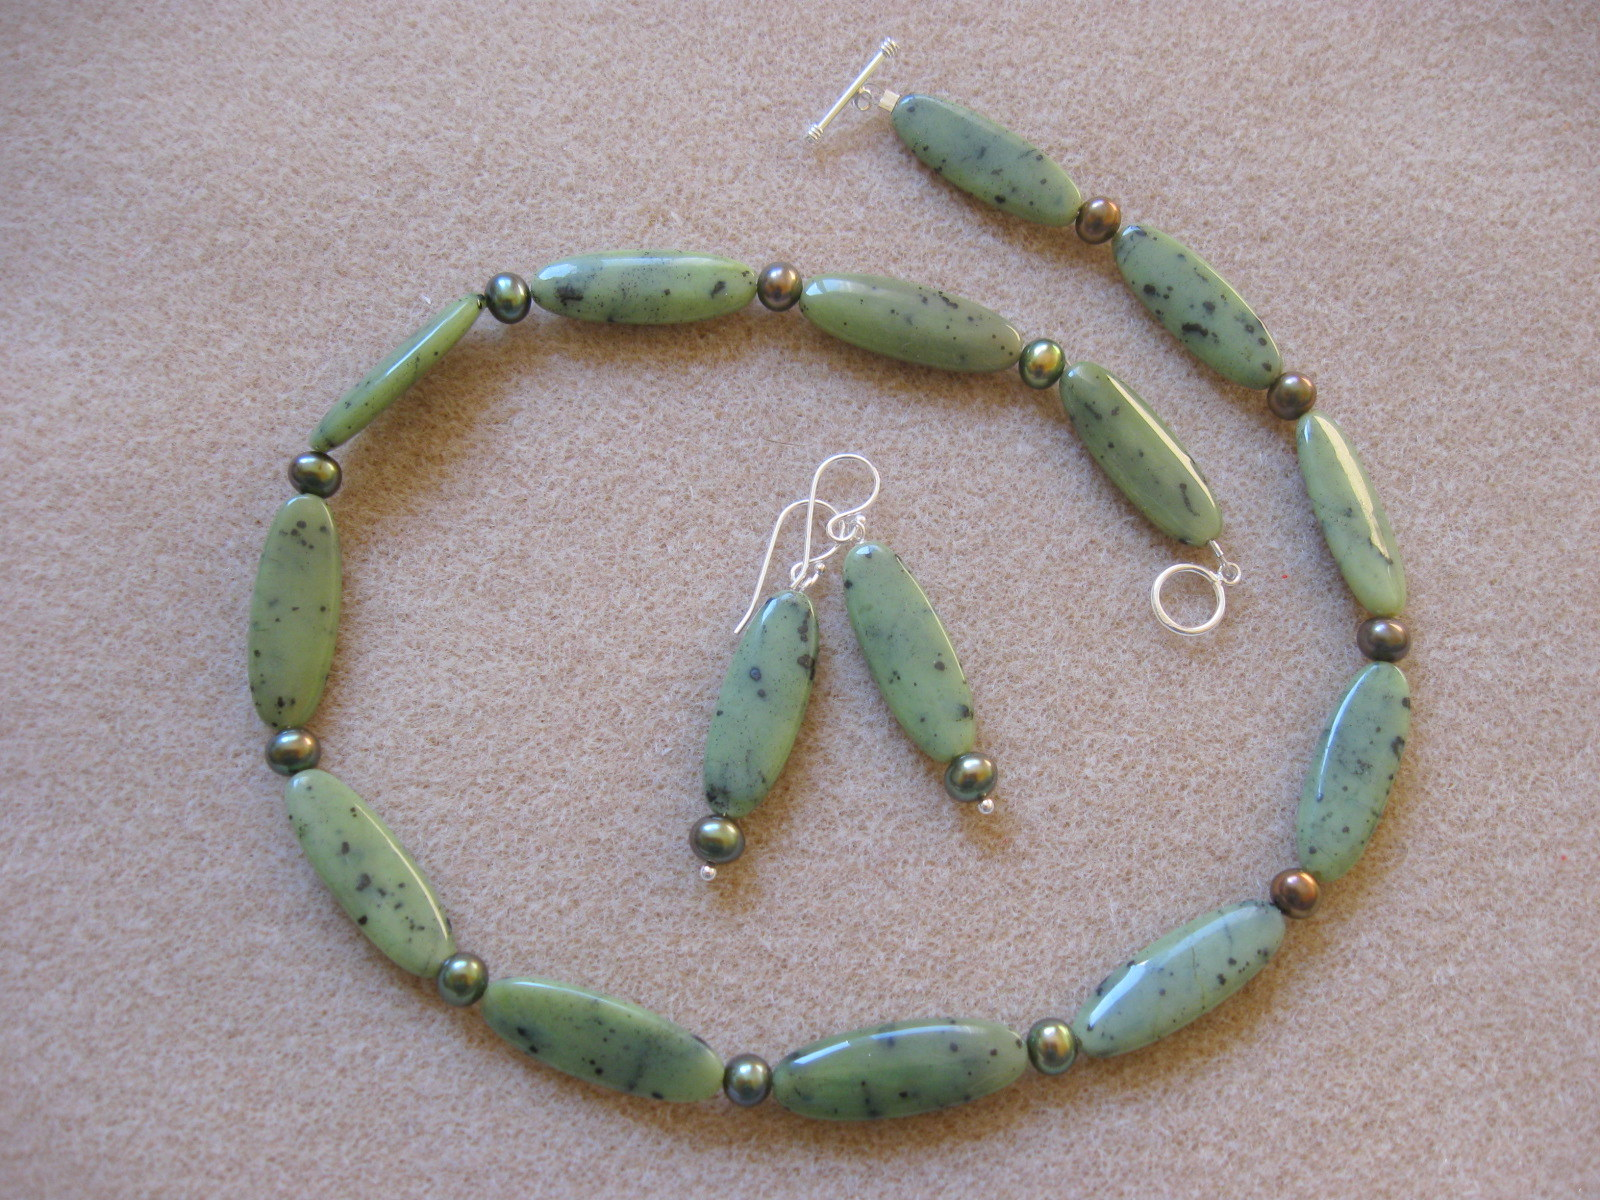 Canadian jade and freshwater pearls set